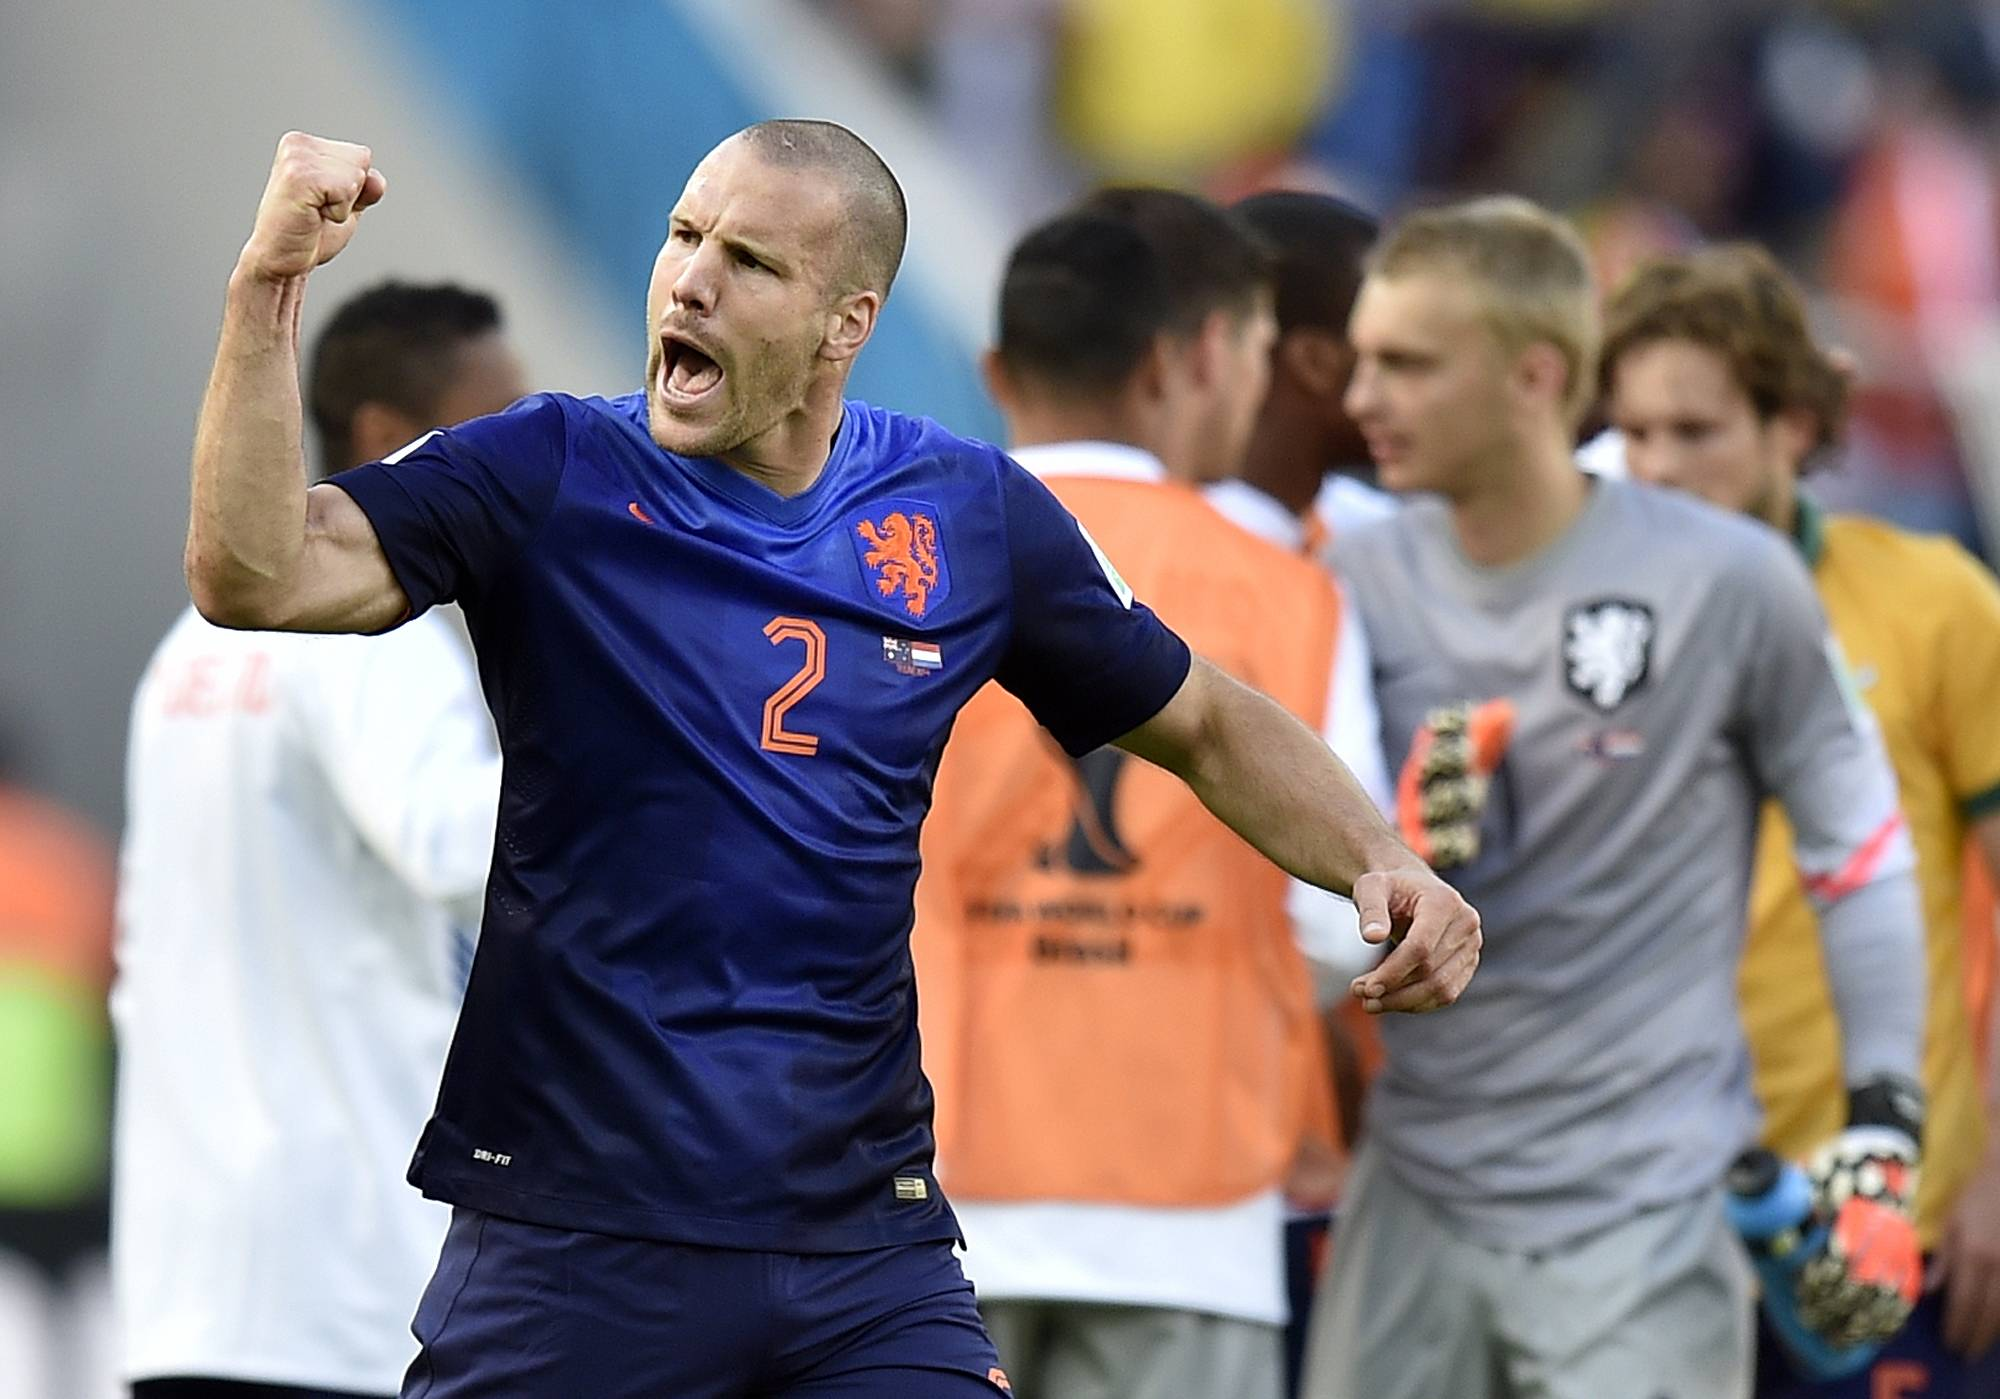 Netherlands' Ron Vlaar celebrates after the group B World Cup soccer match between Australia and the Netherlands at the Estadio Beira-Rio in Porto Alegre, Brazil, Wednesday, June 18, 2014. The Netherlands won the match 3-2. (AP Photo/Martin Meissner)